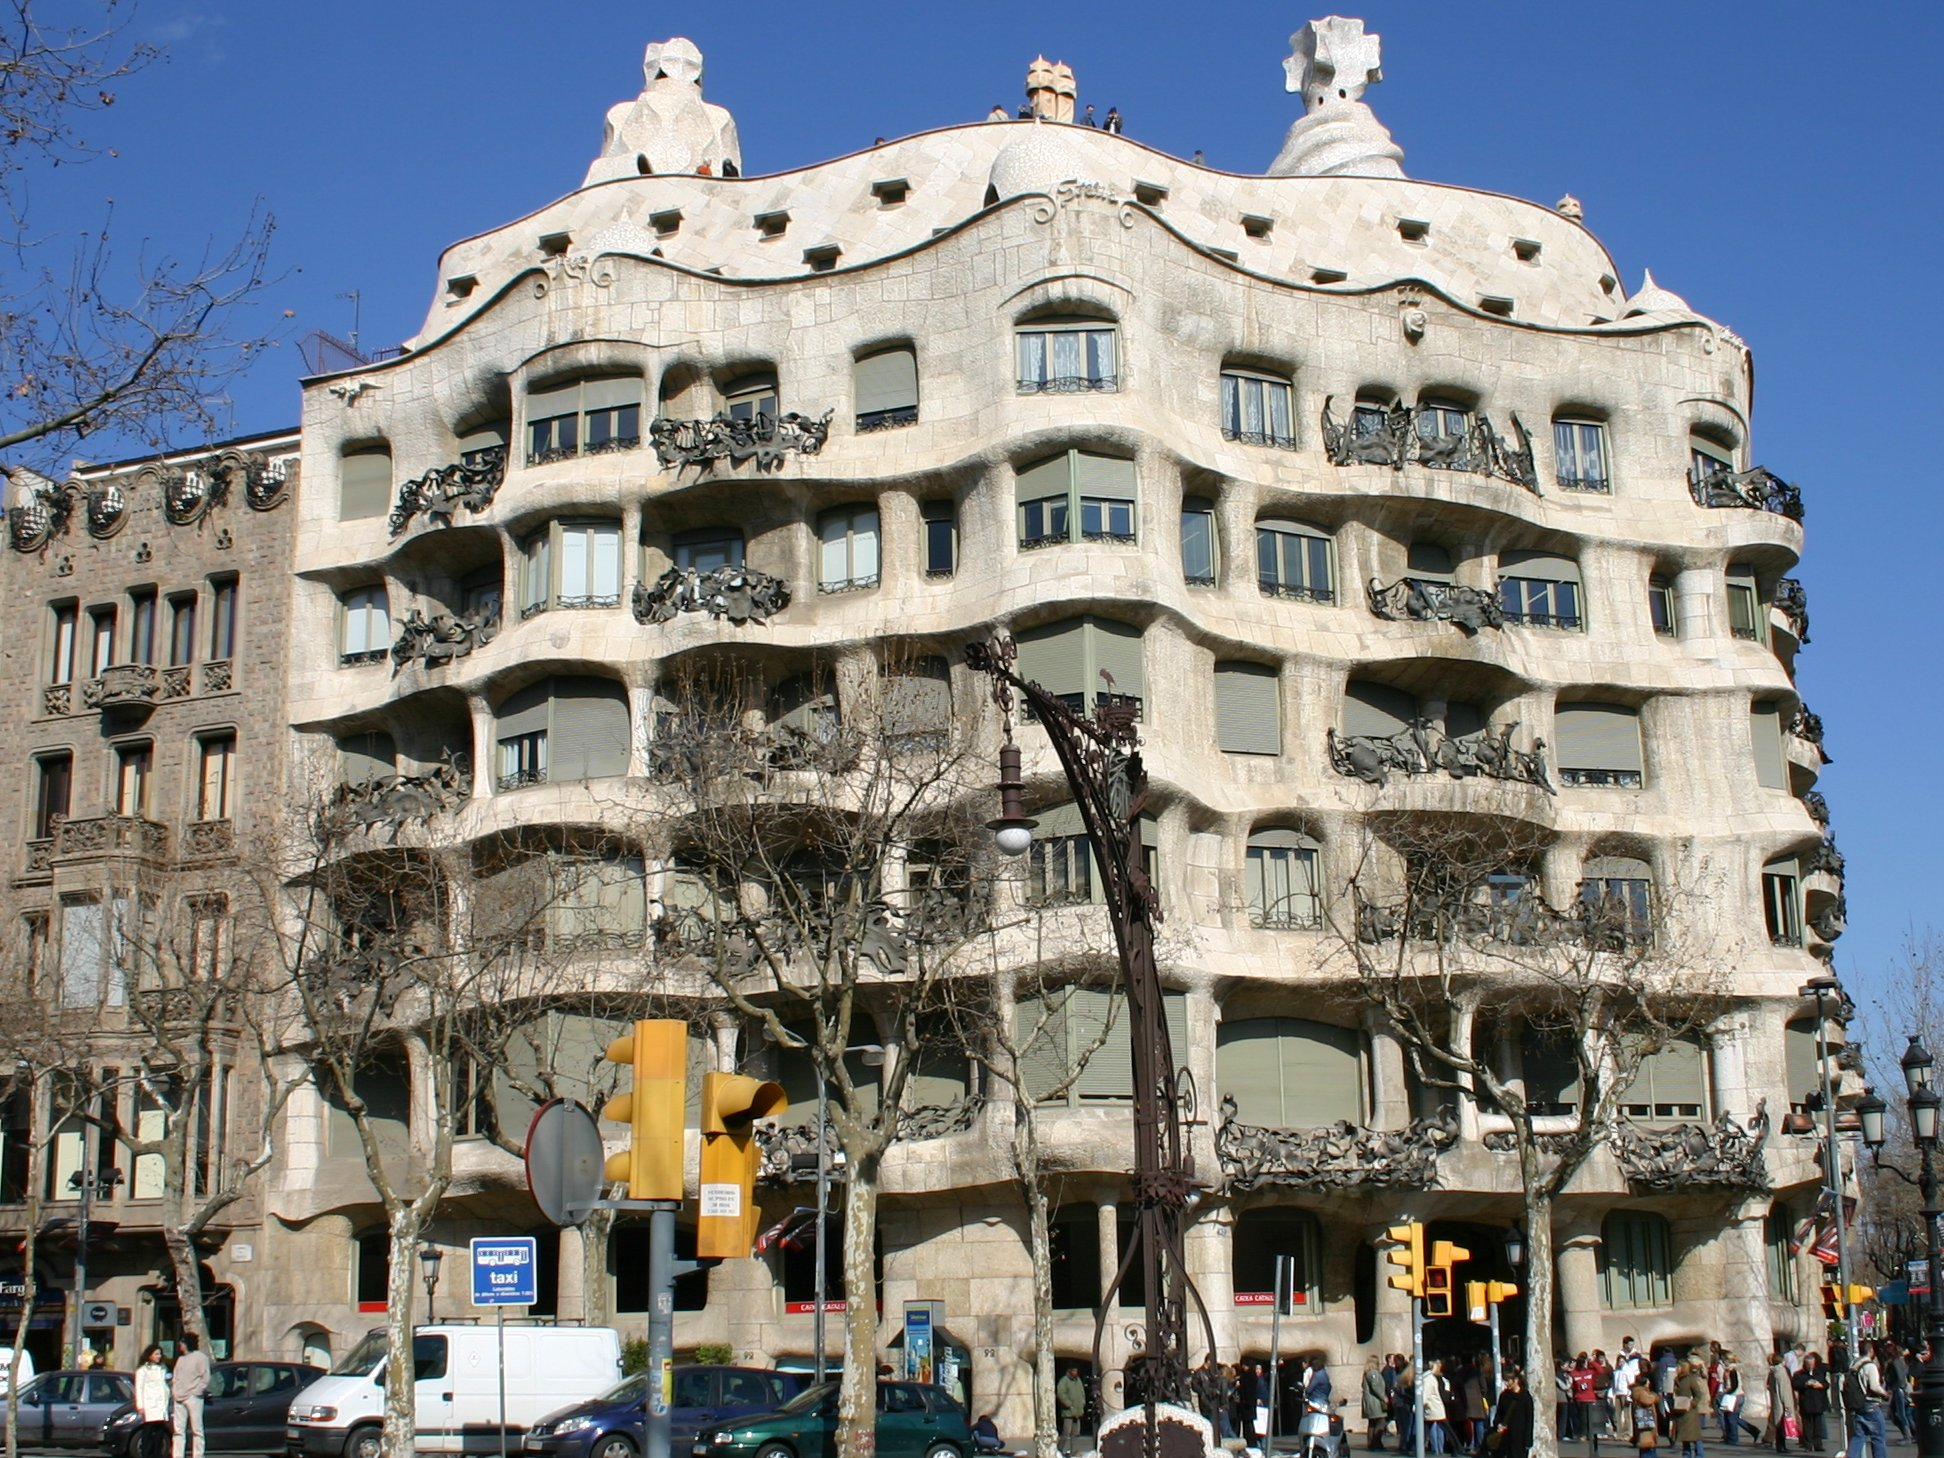 File:Spain.Barcelona.Casa.Mila.jpg